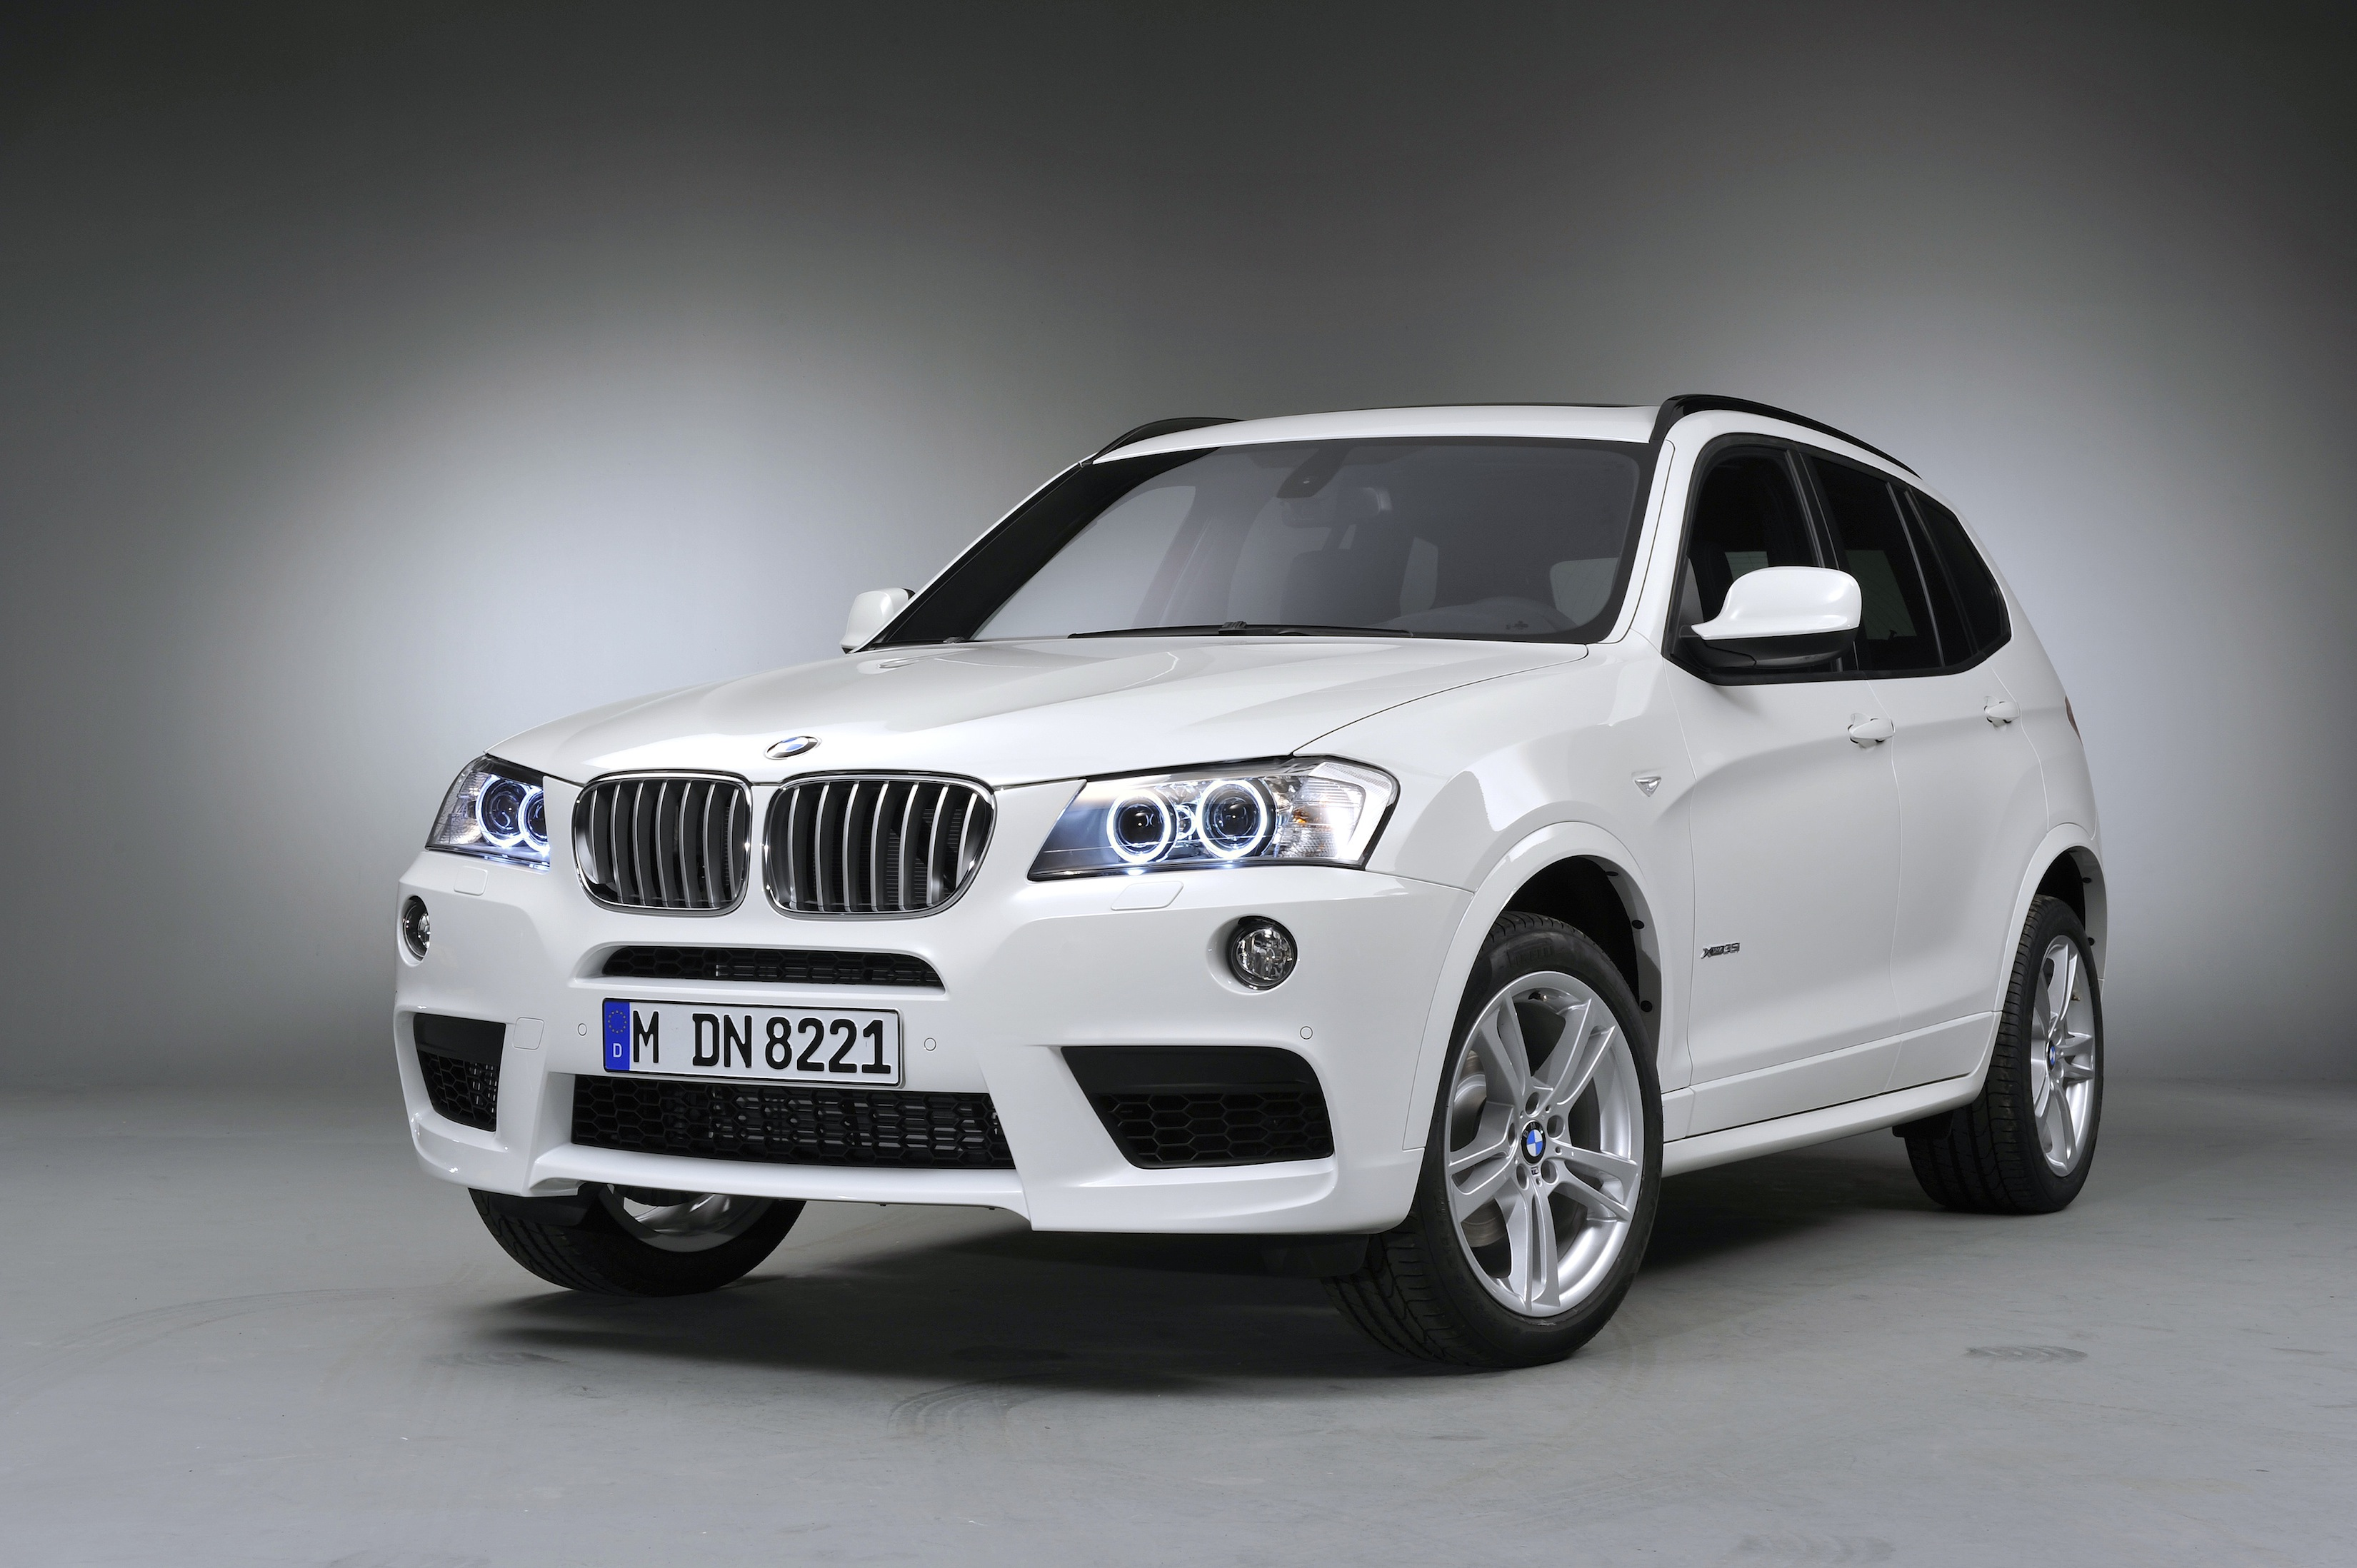 essai du bmw x3 xdrive35i 2014. Black Bedroom Furniture Sets. Home Design Ideas